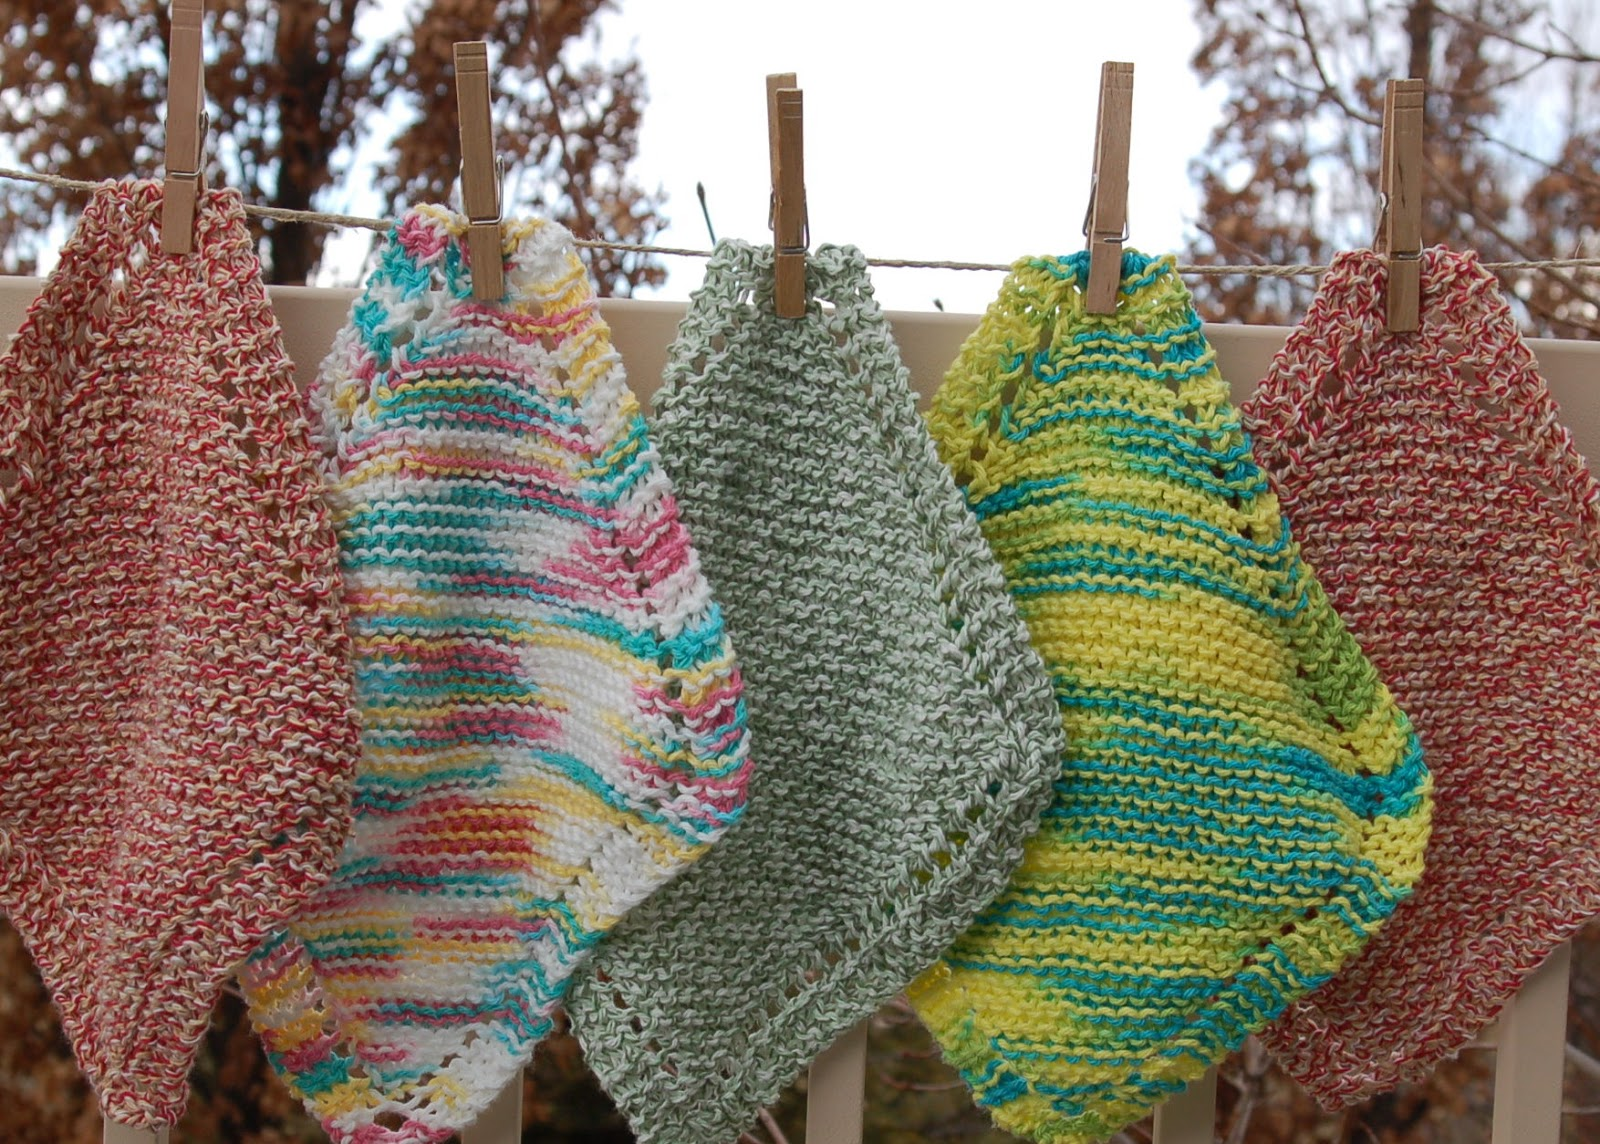 How to knit a knitted dish towel